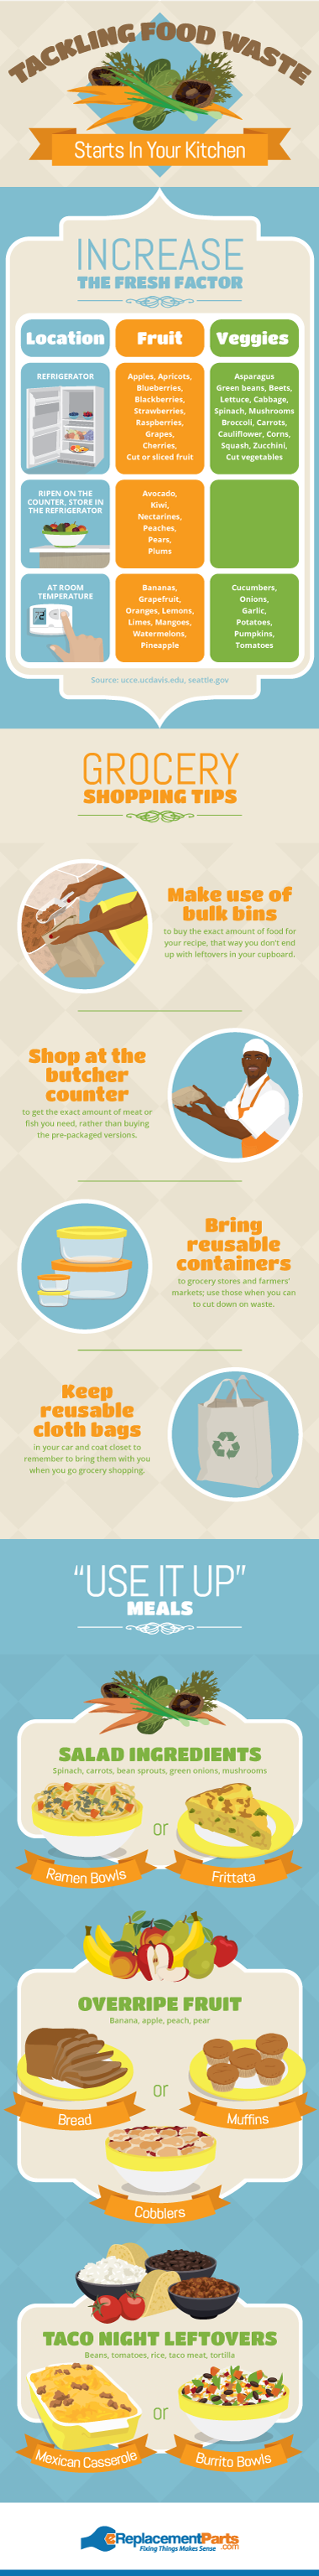 Meal Planning to Avoid Food Waste